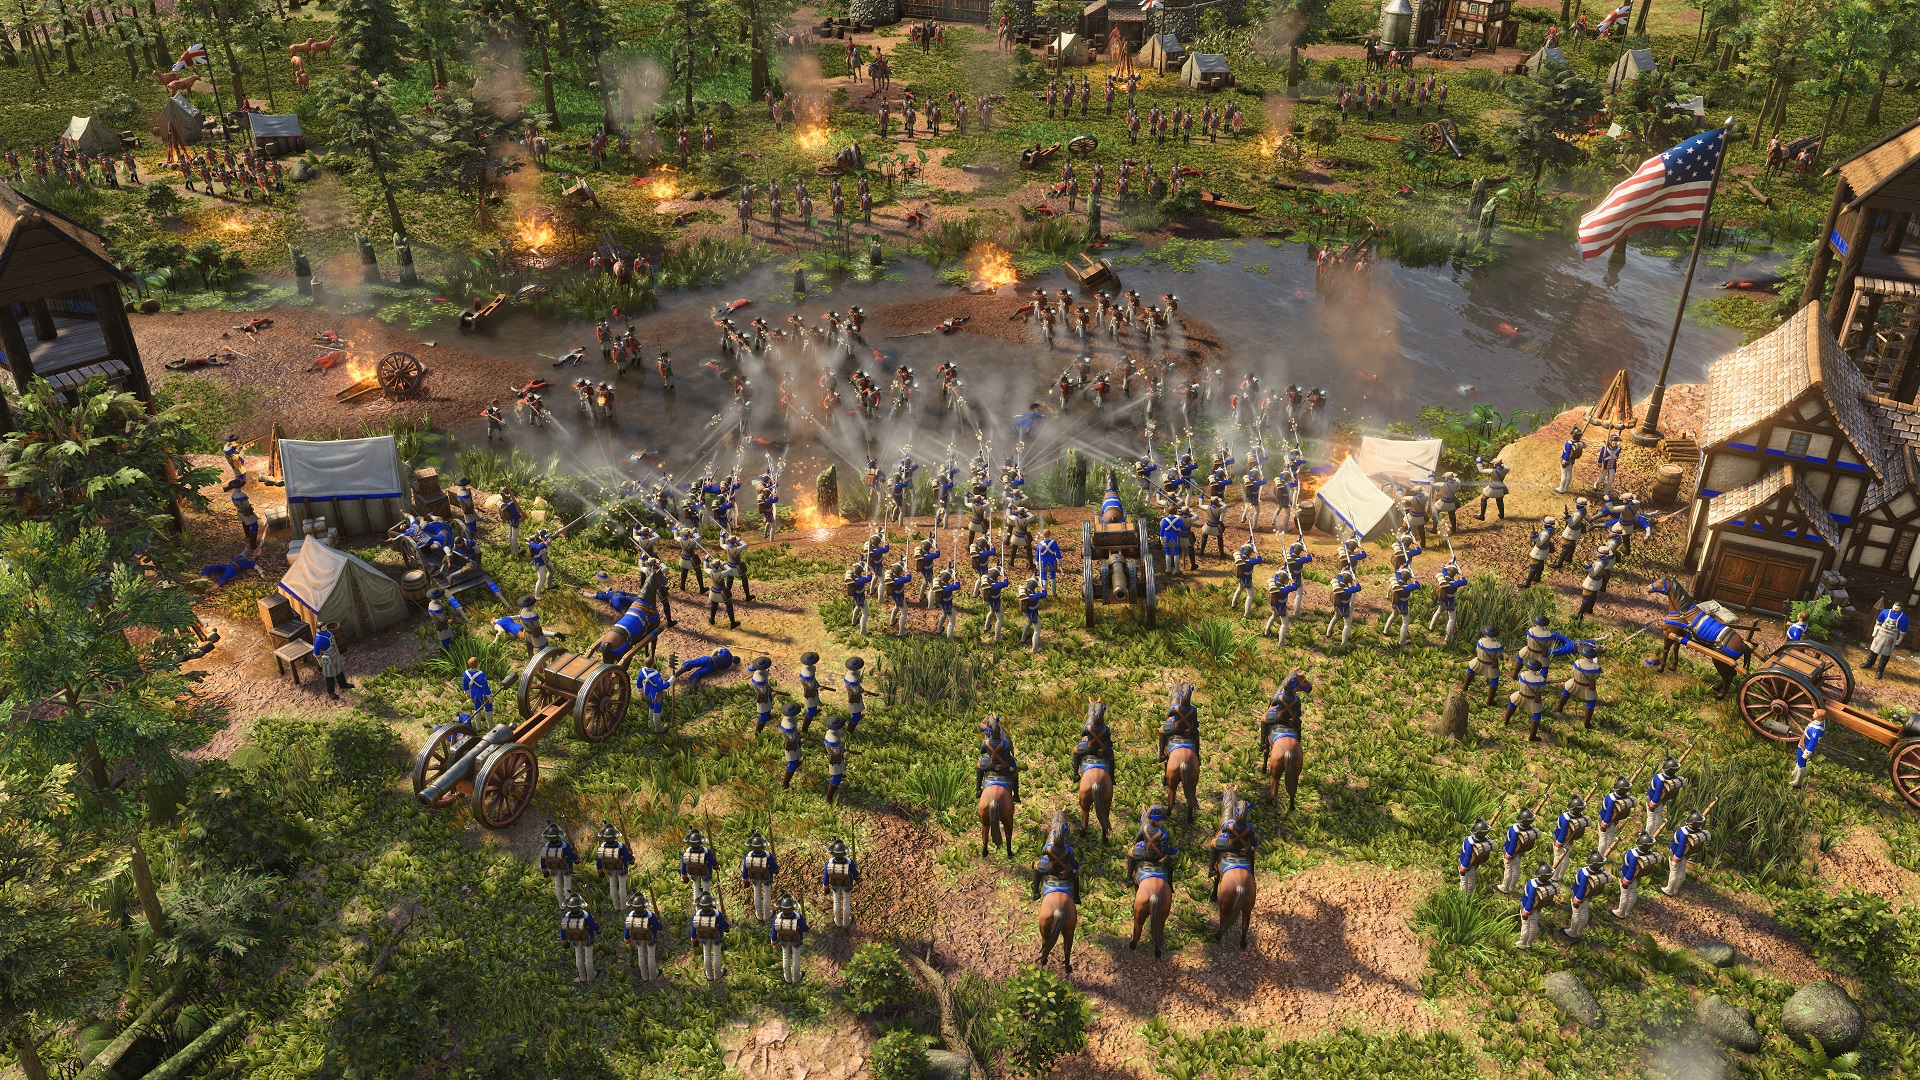 You have less than a month to unlock Age of Empires 3's US civ for free